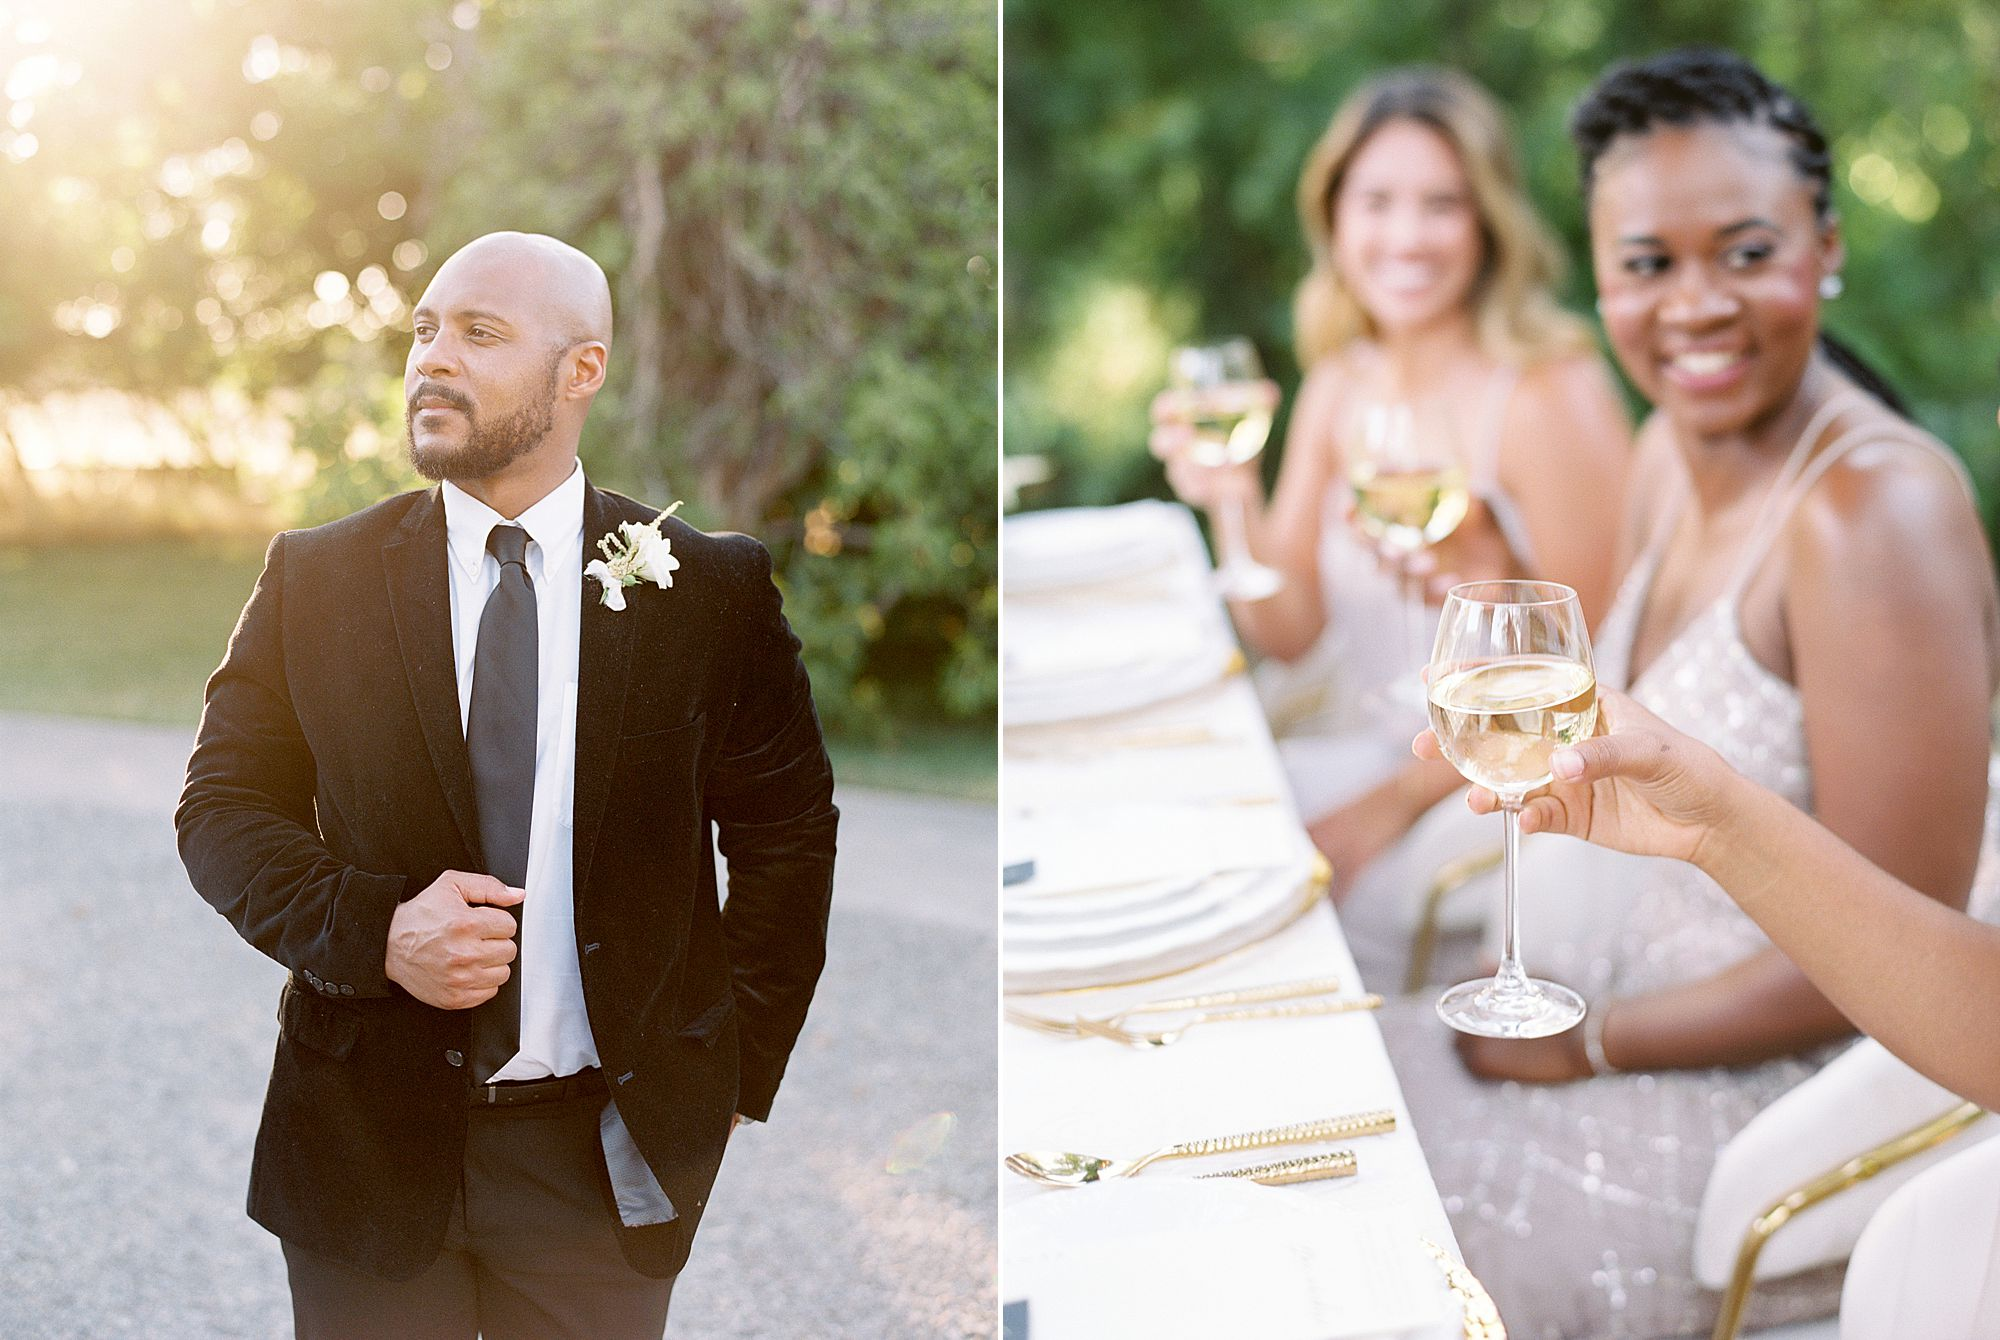 Park Winters Micro-Wedding Inspiration on Style Me Pretty - Stephanie Teague Events - Ashley Baumgartner - Park Winters Wedding - Black Tie Wedding - Micro-Wedding Sacramento Photographer_0057.jpg